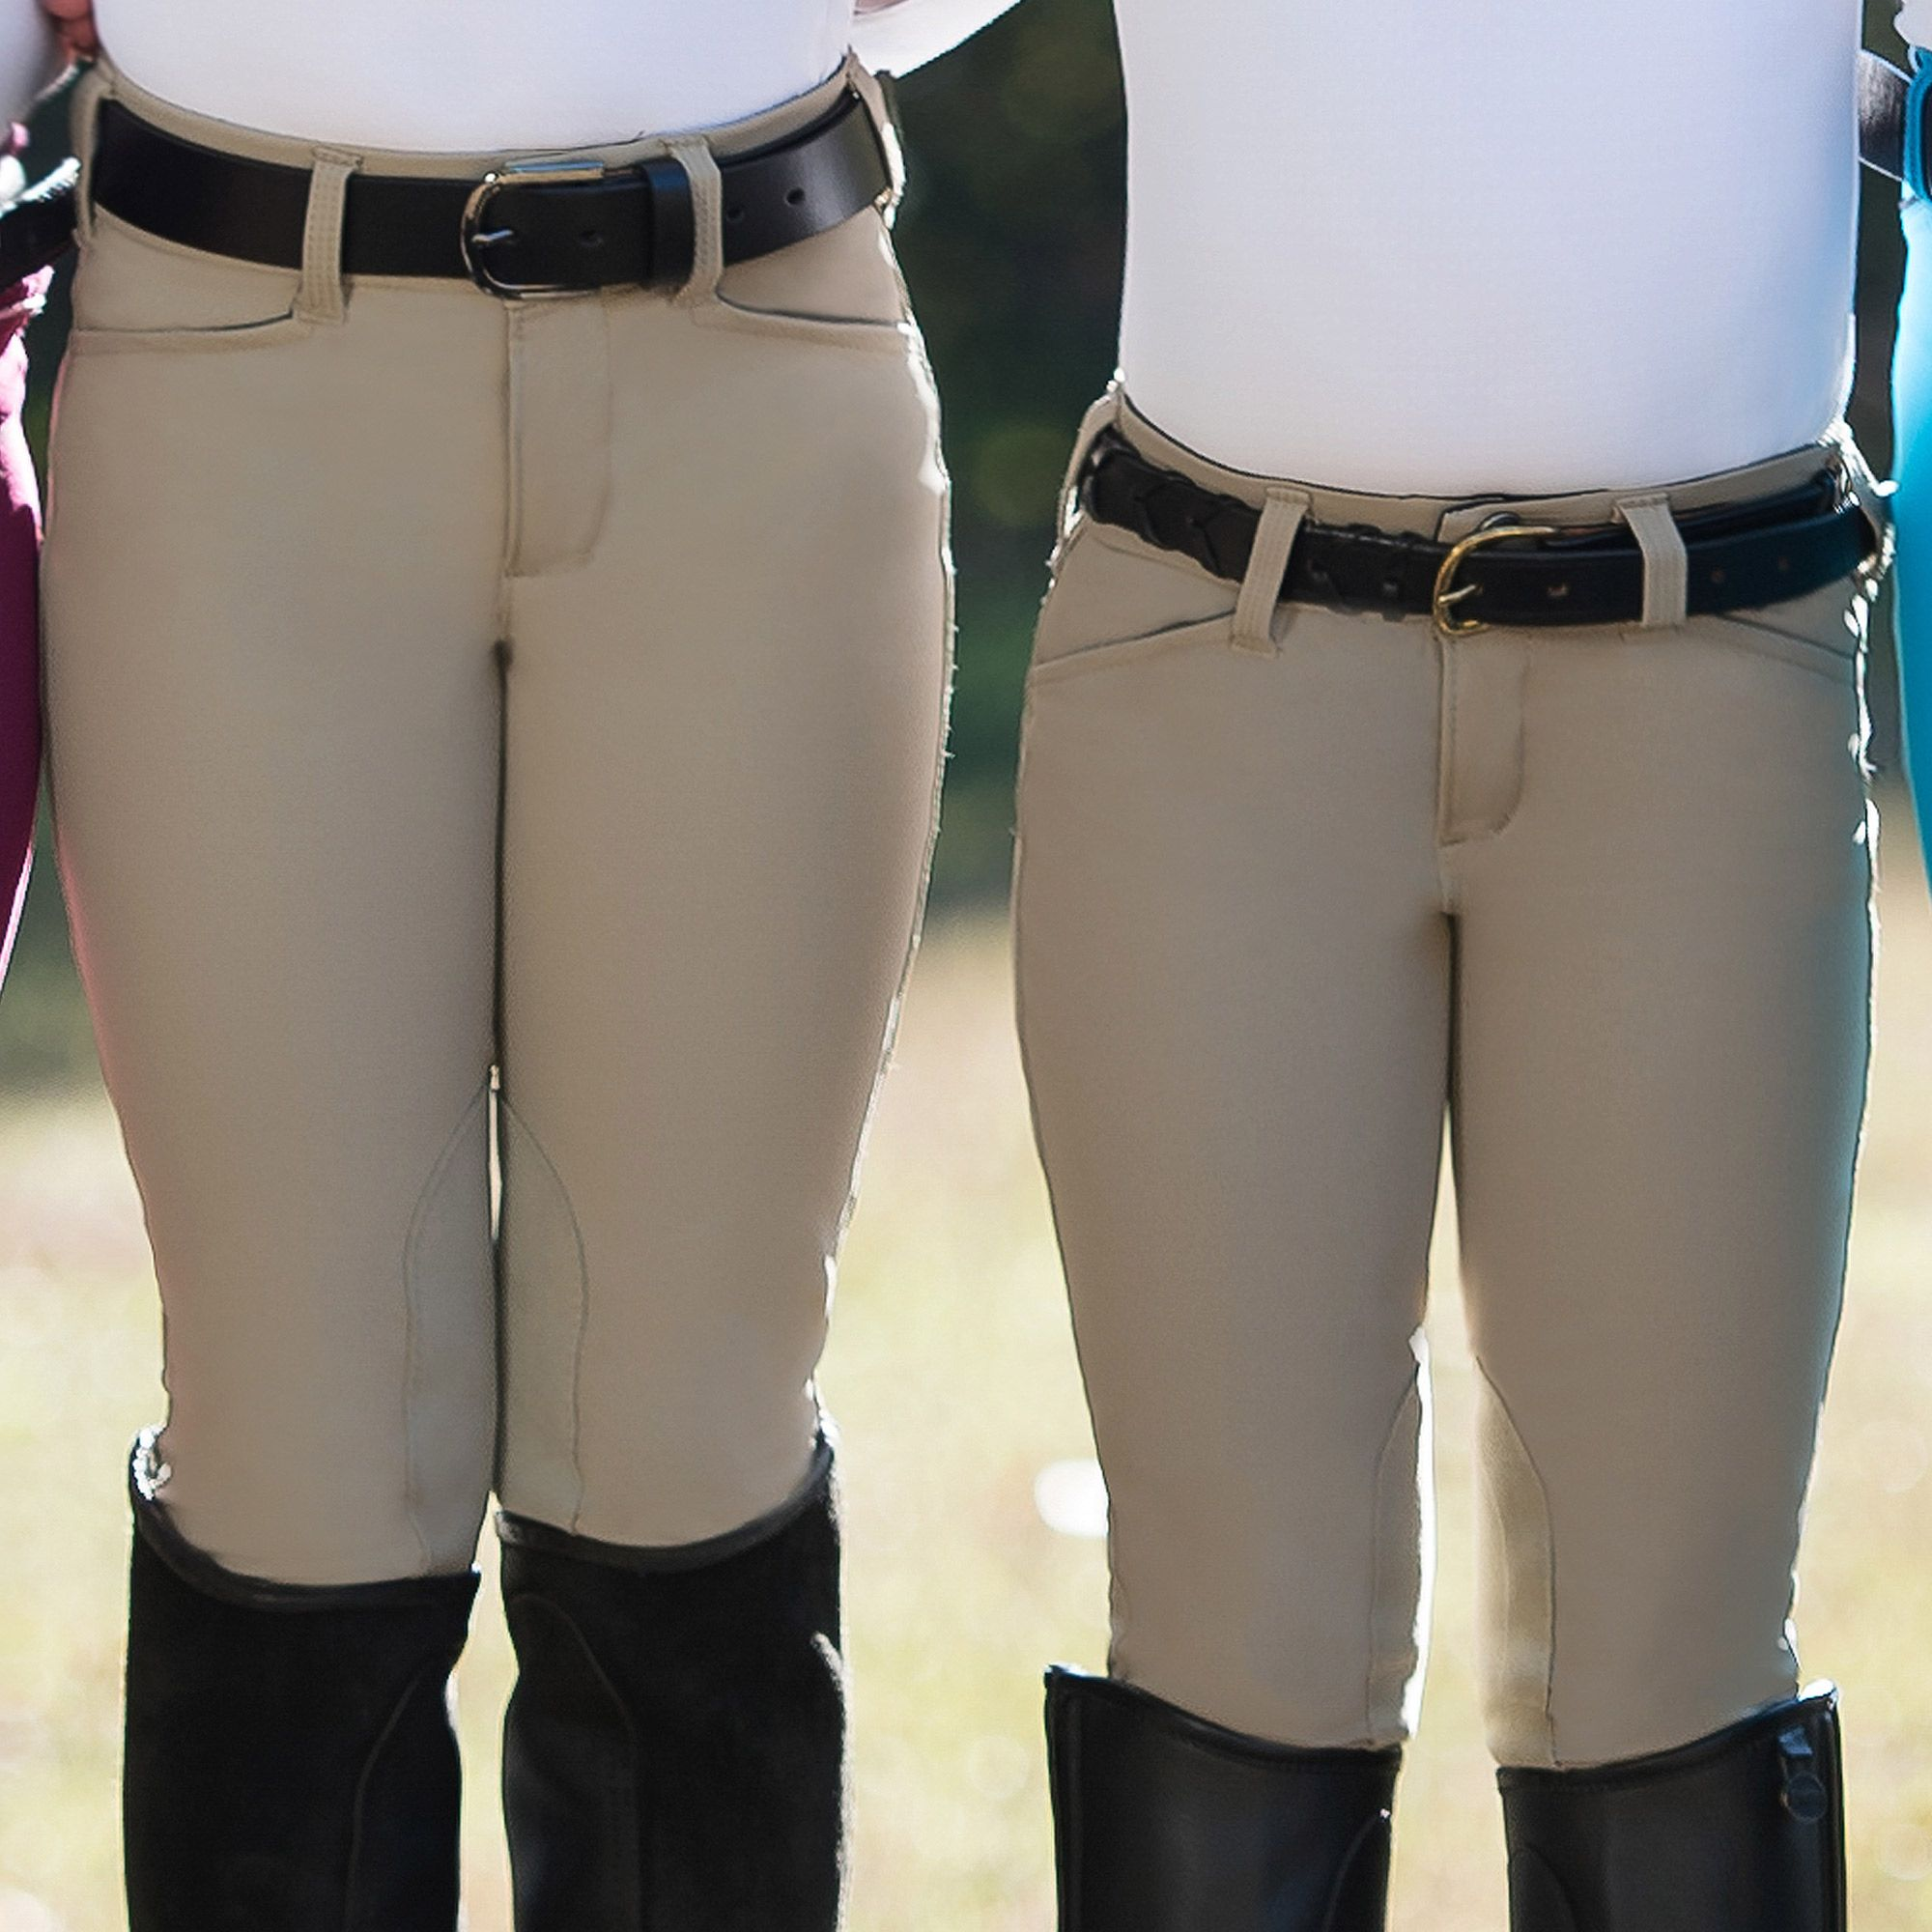 Irideon-Children-039-s-Hampshire-Knee-Patch-Riding-Breeches-with-Euro-Seat-Styling miniature 12